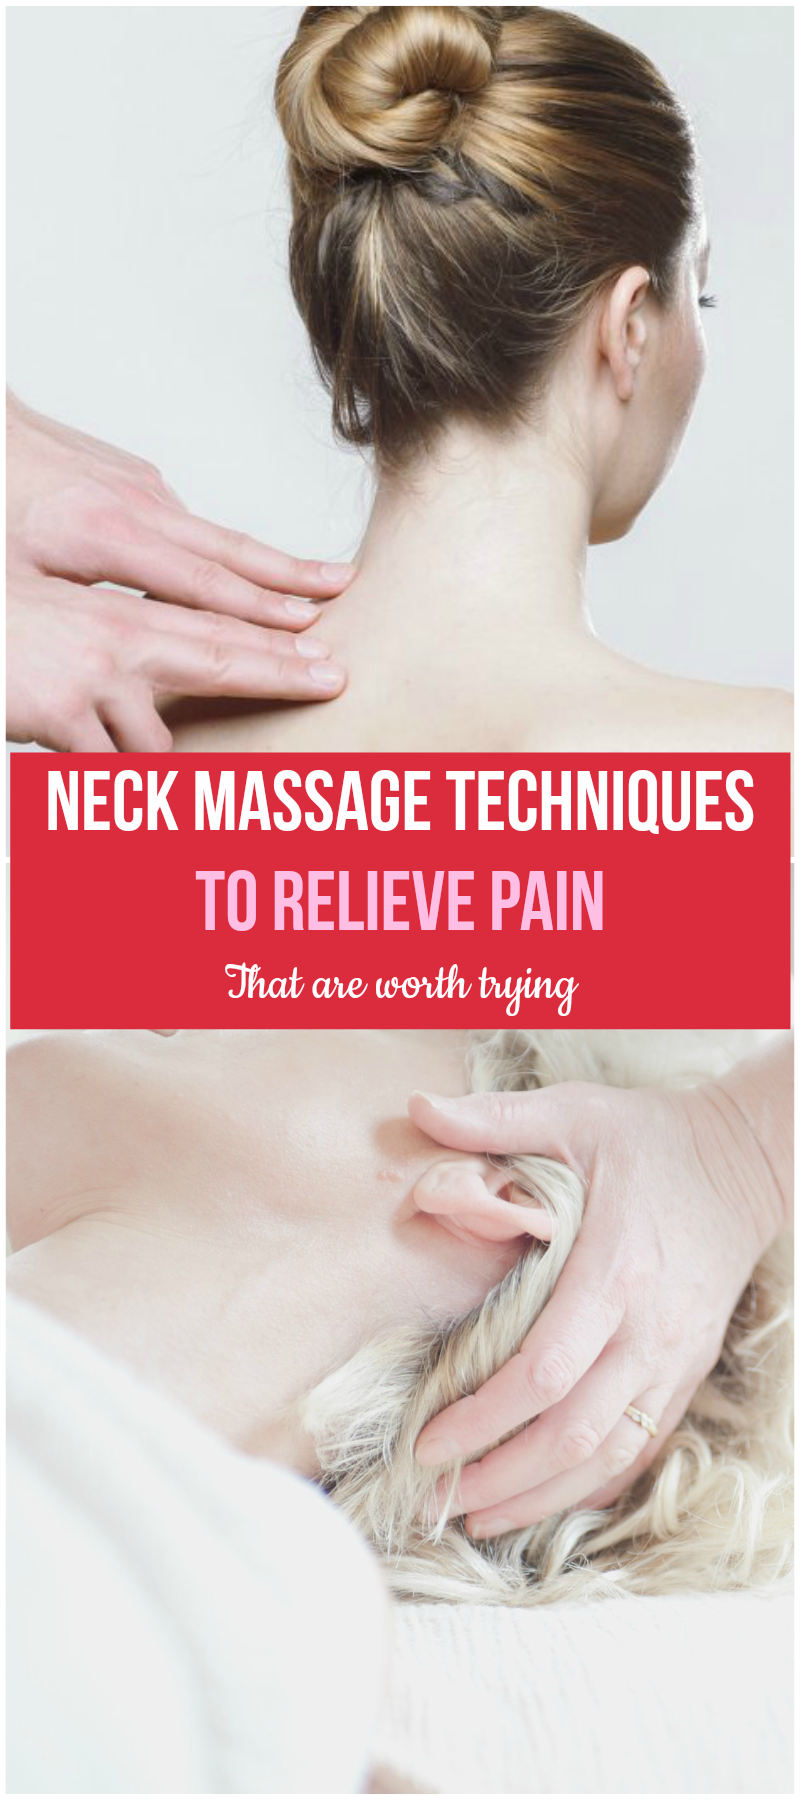 Neck massage techniques you can try at home with your partner or friend. Great way to relieve neck pain and enjoy your life a little! #painrelief #neckmassage #massagetips